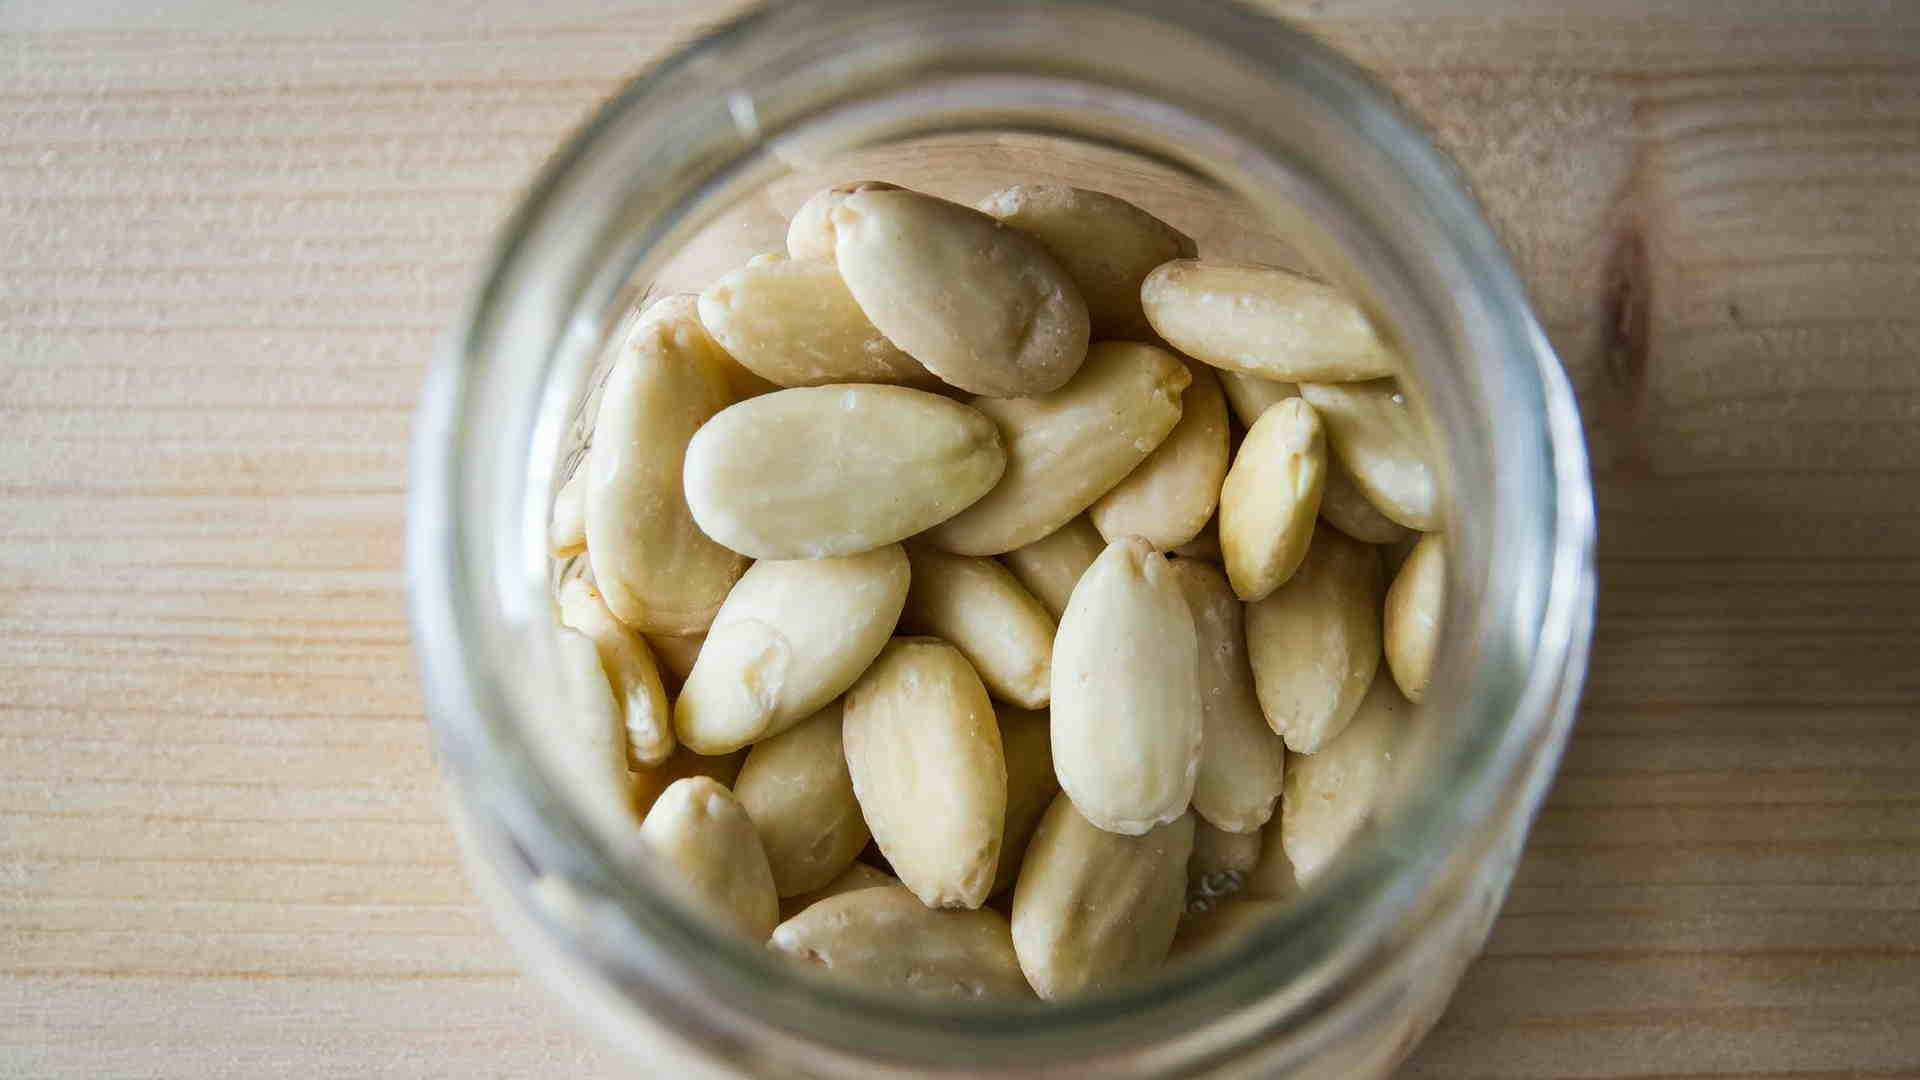 Blanched Almonds in a Jar